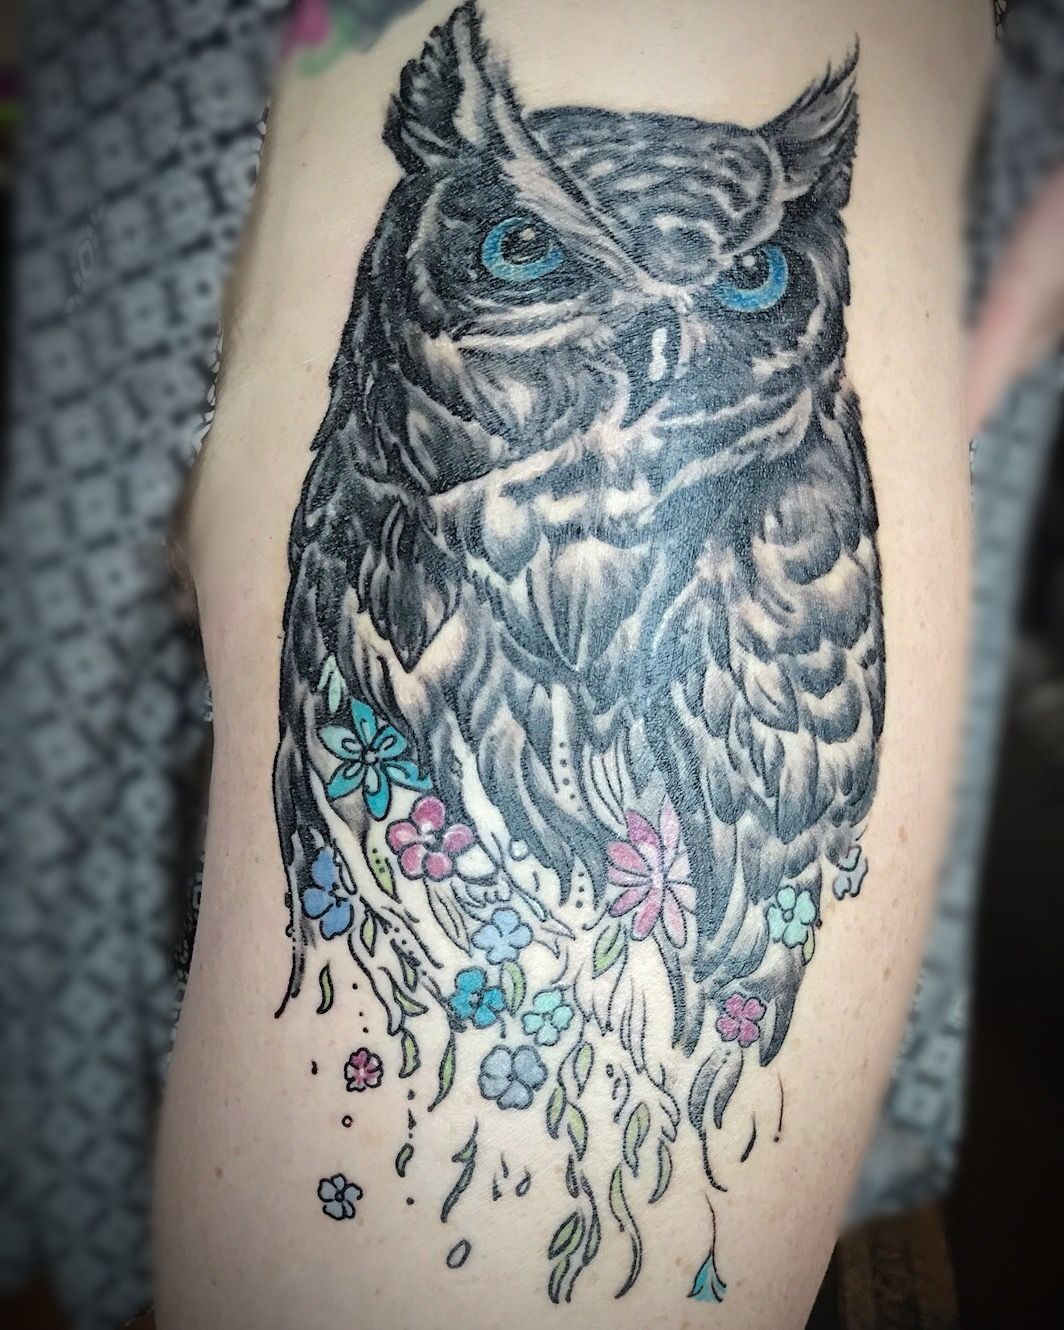 Owl tattoo. Realistic, badass, blue eyes, fade to flowers